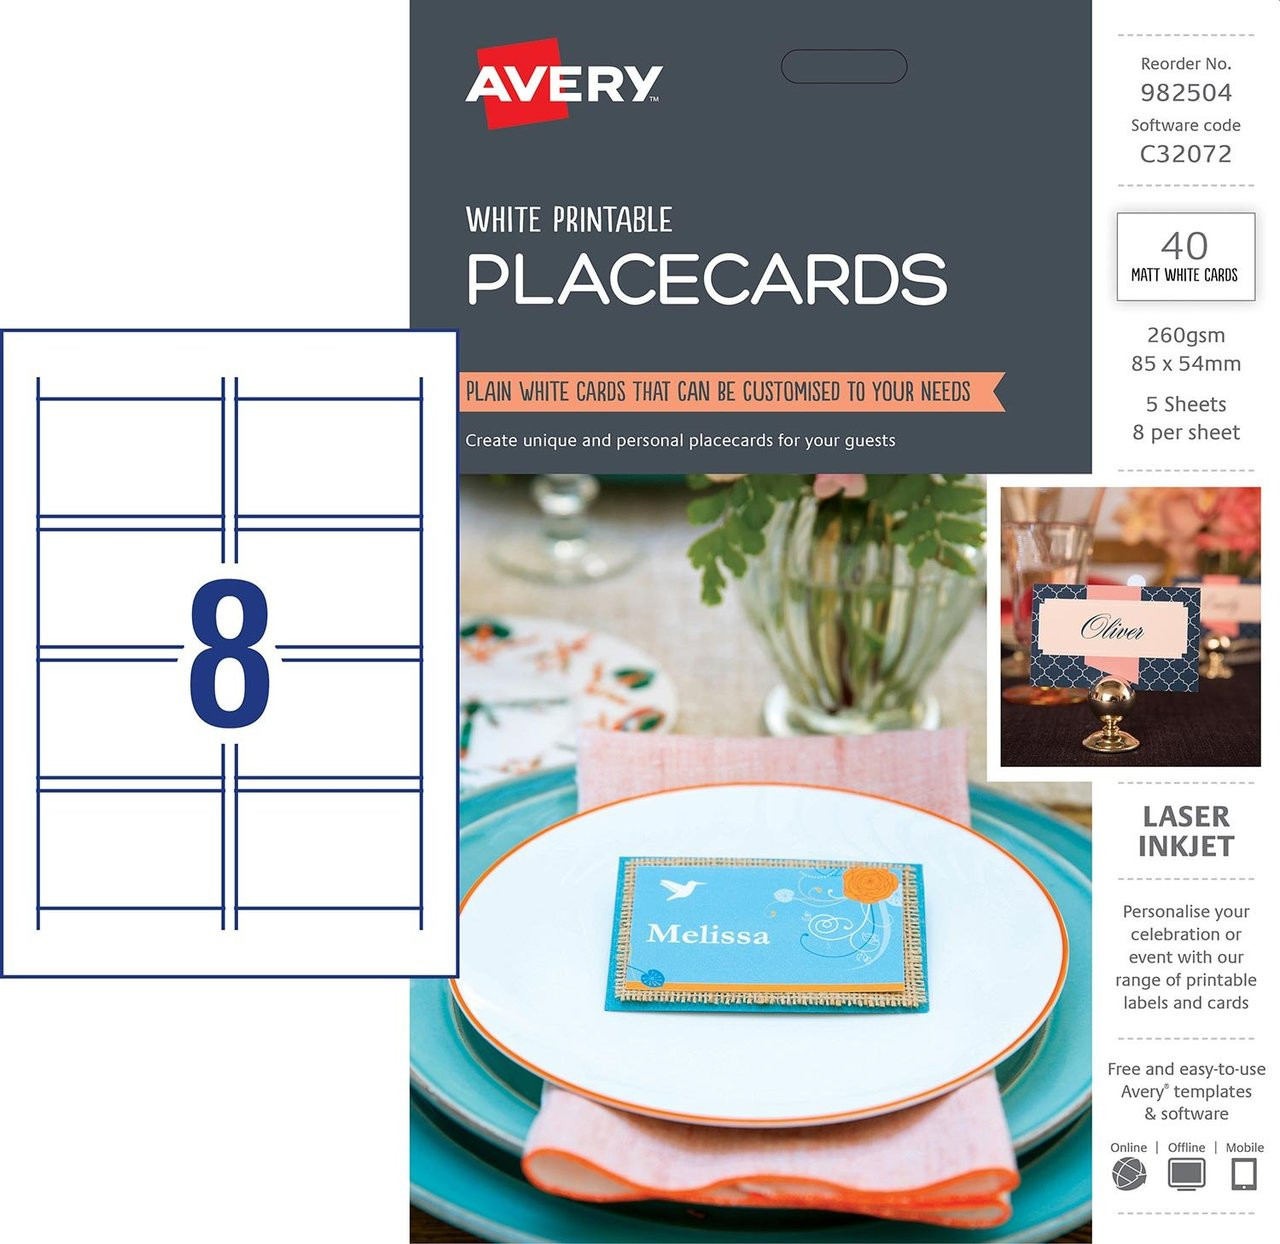 graphic relating to Avery Printable Place Cards identify AVERY 982504 PLACECARDS, C32072, 40/PACK, 85 X 54MM 8UP